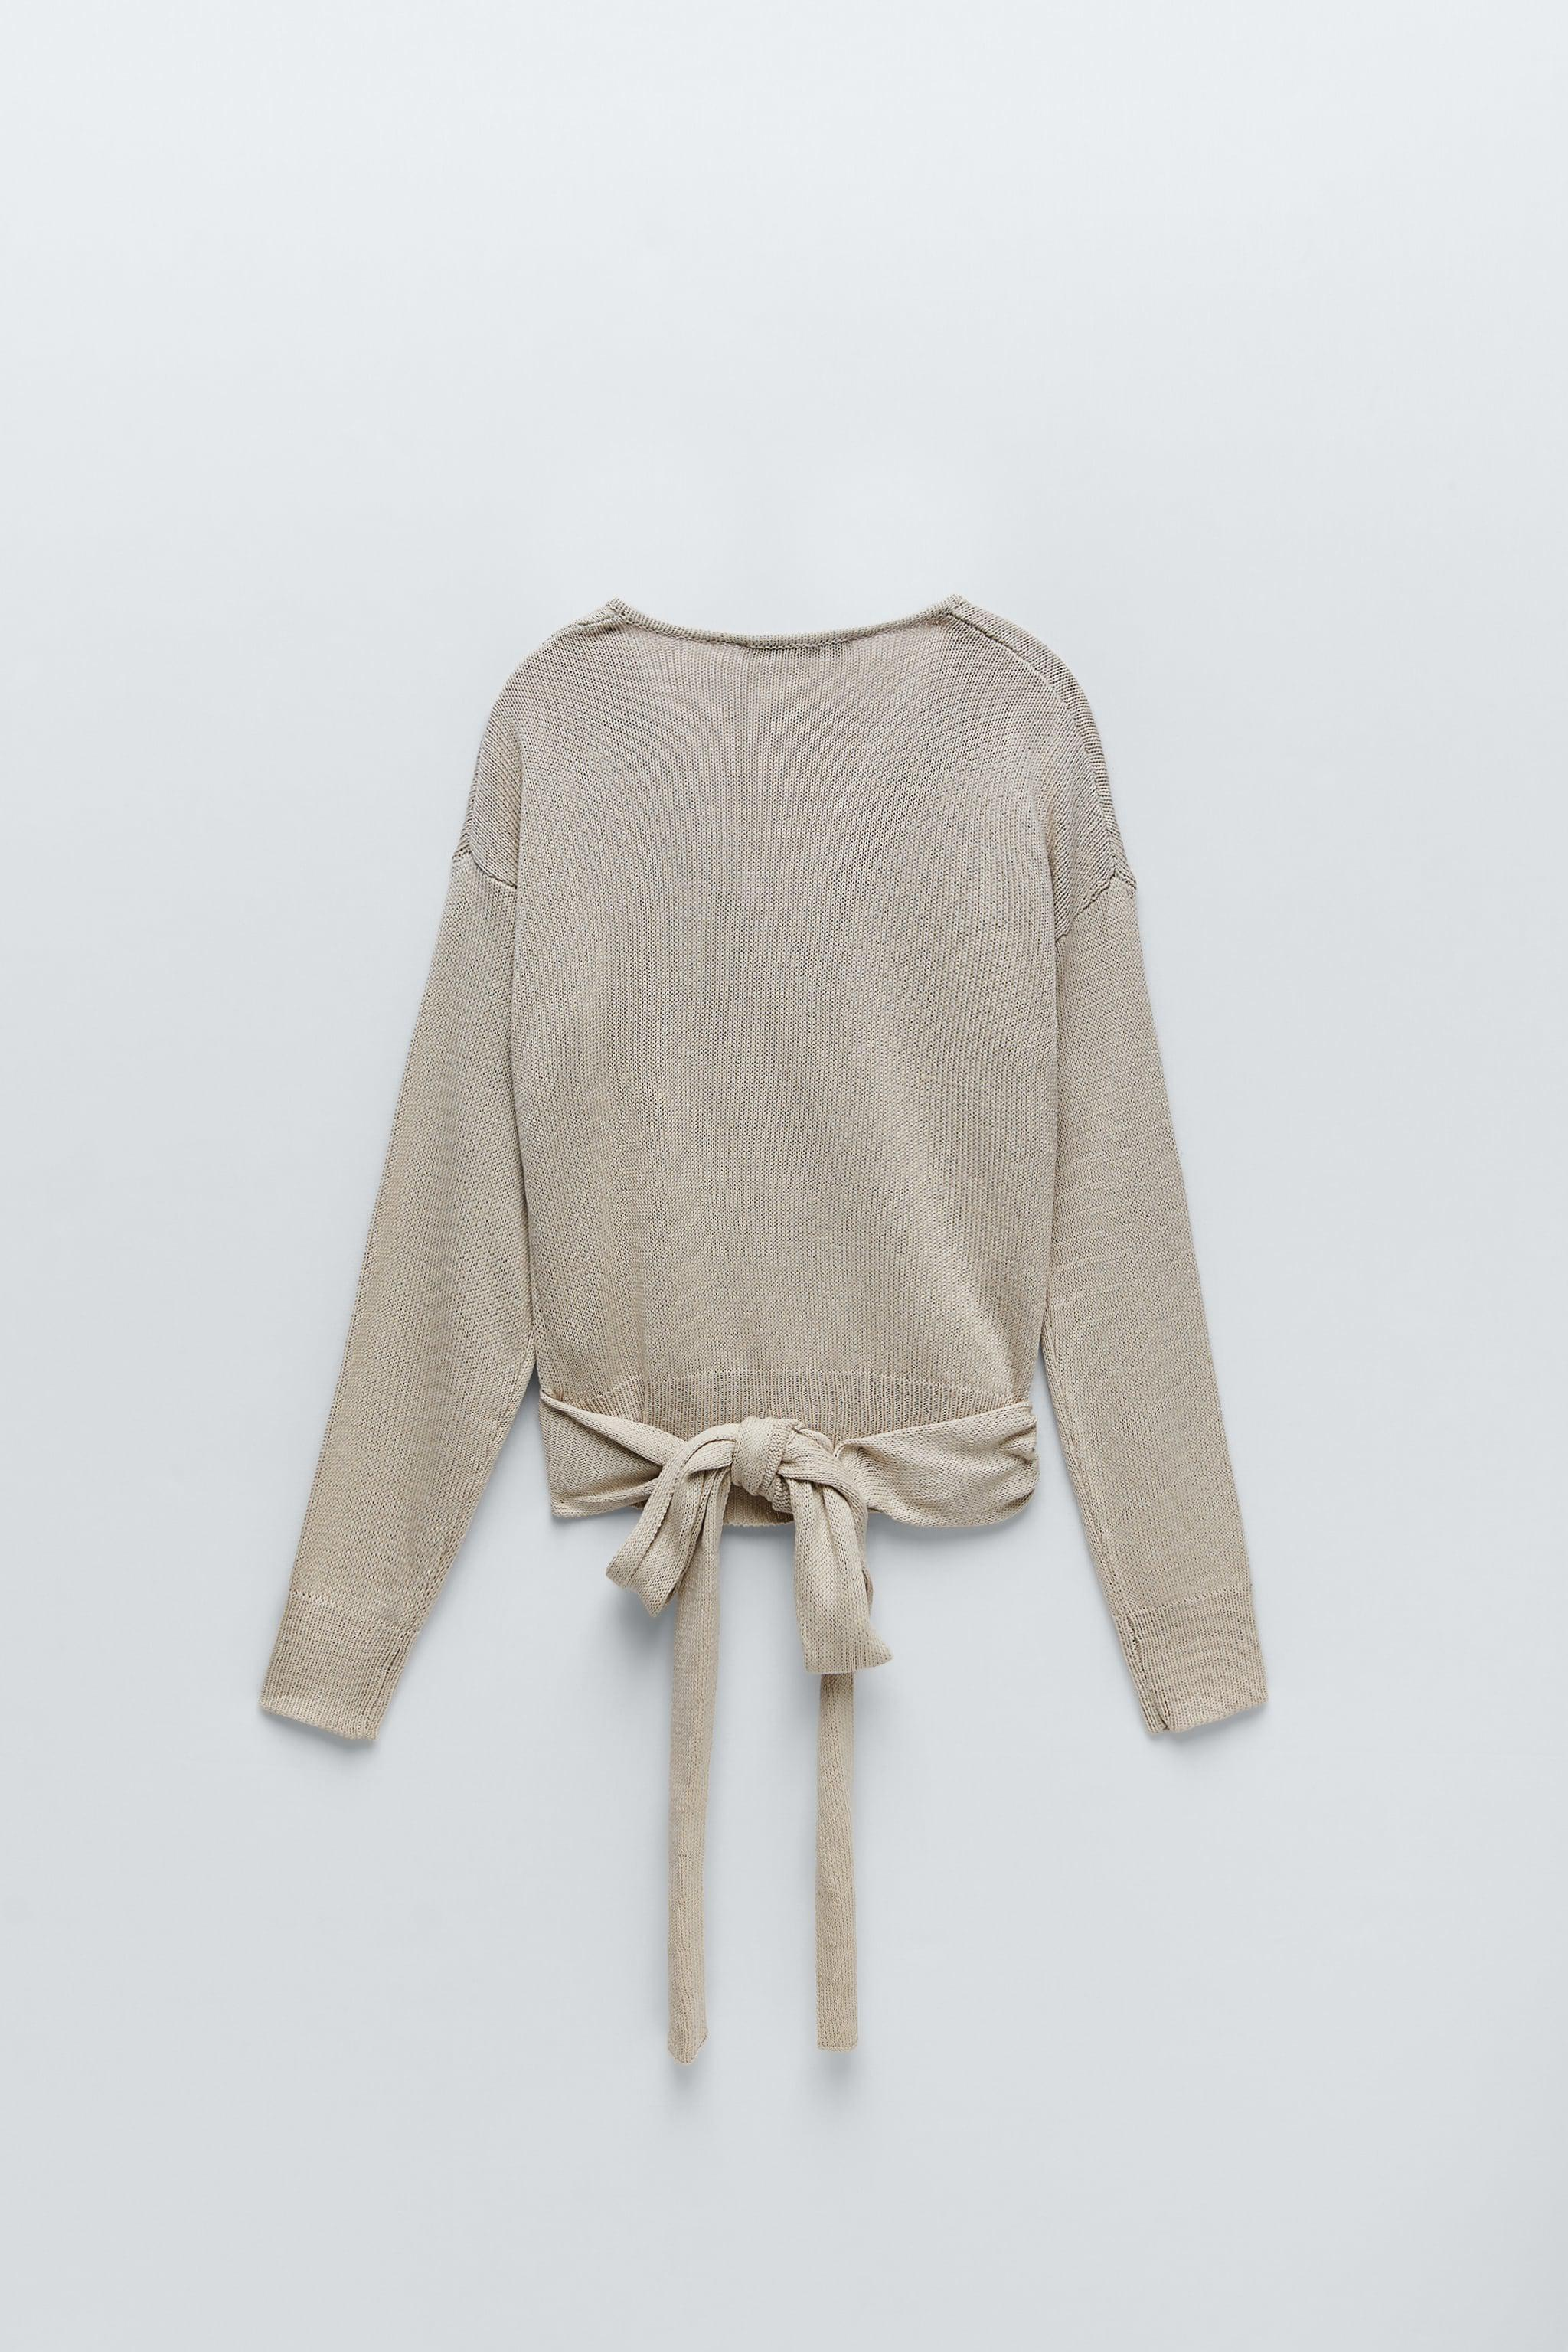 TIED KNIT SWEATER 5